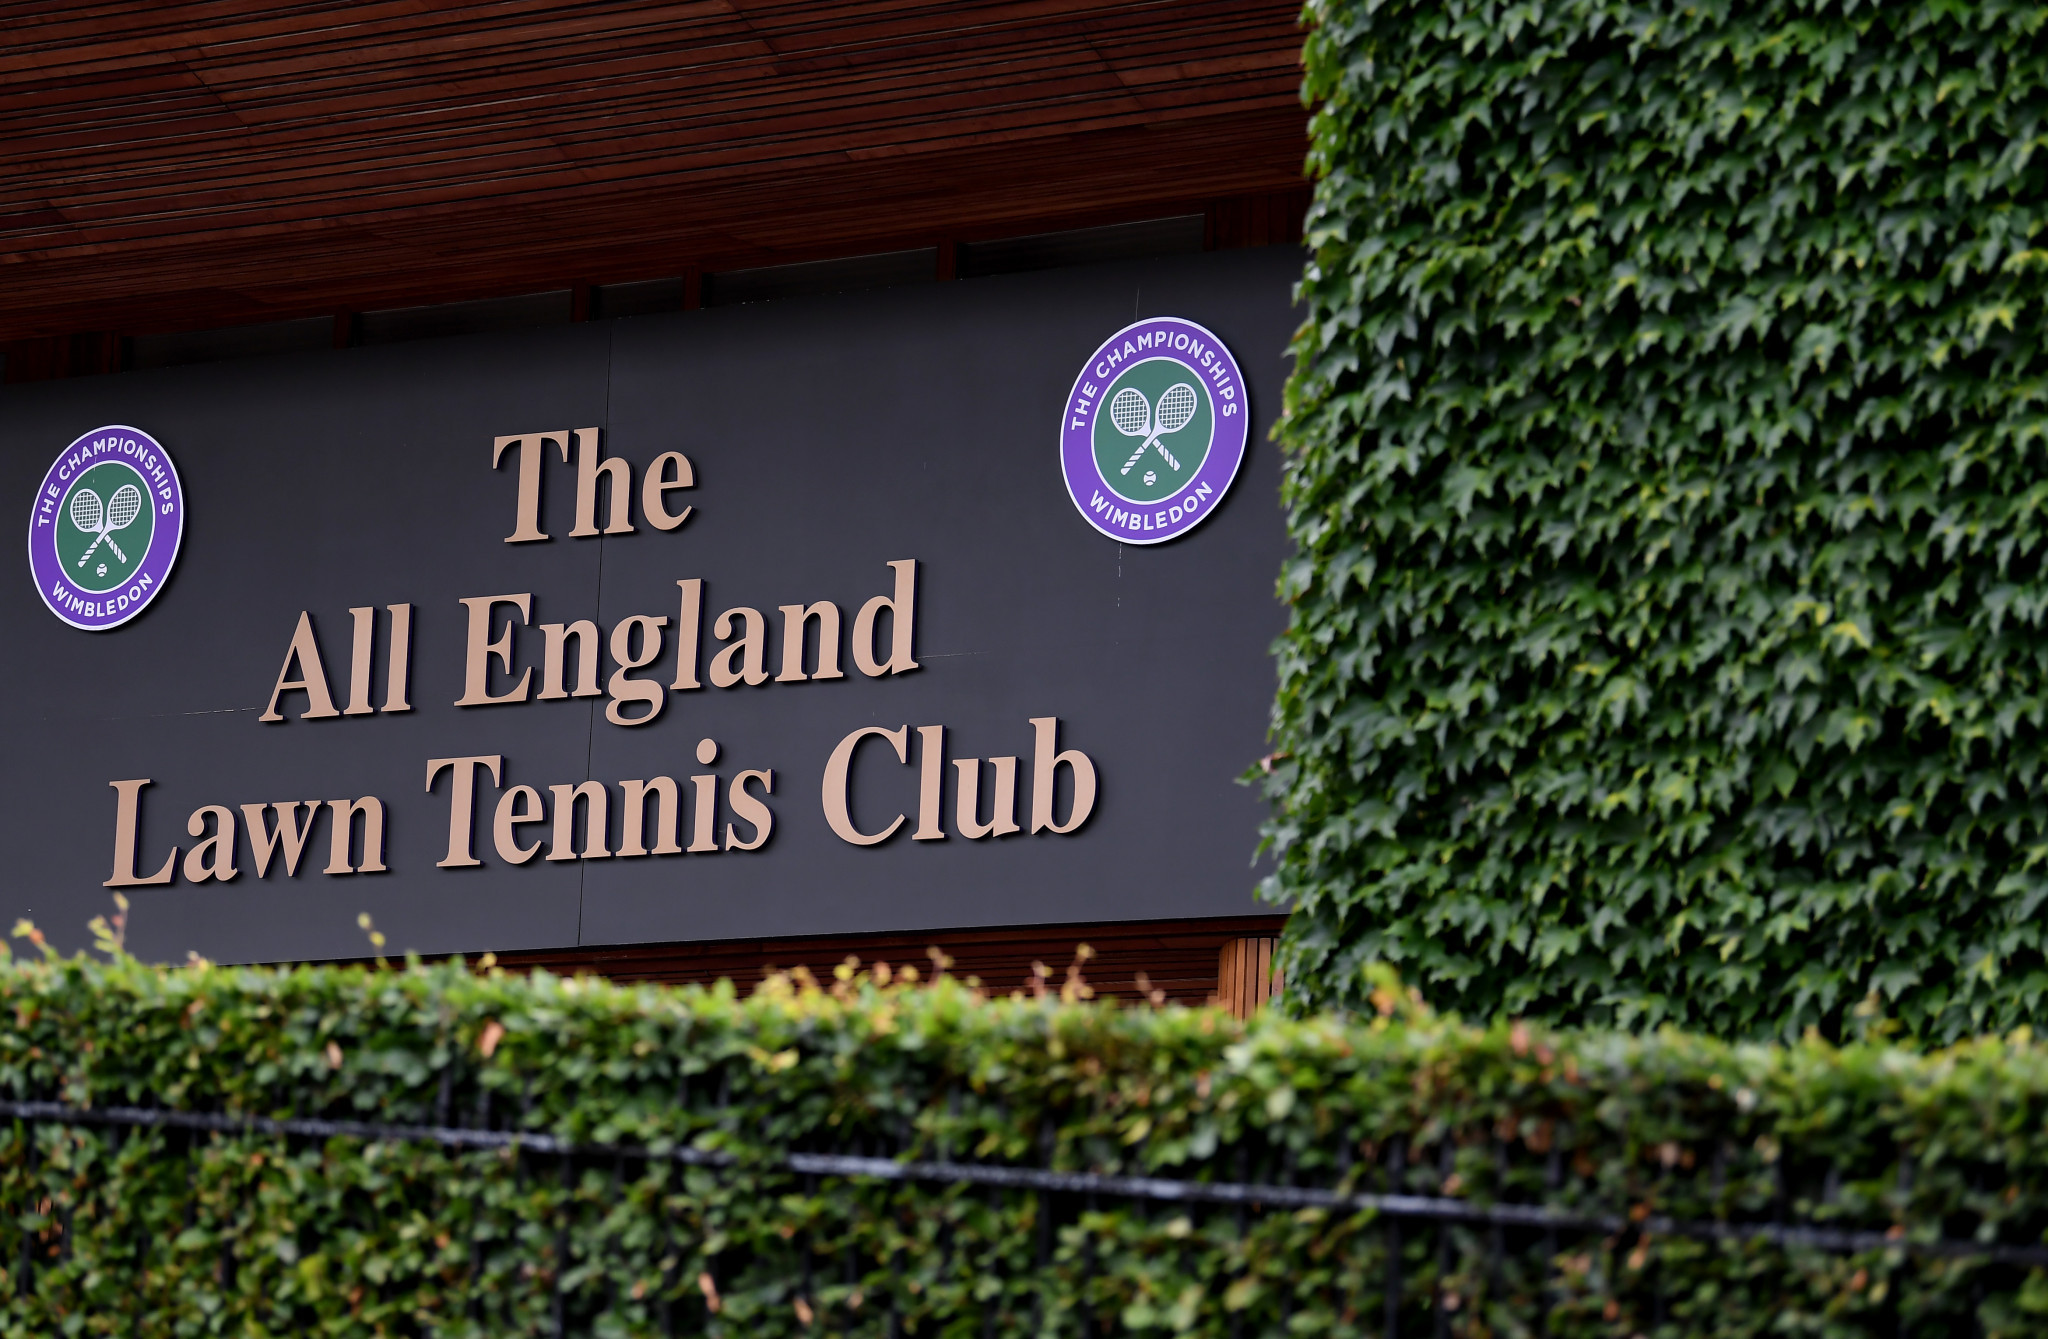 Prize money worth £10 million to be distributed to players after Wimbledon cancellation